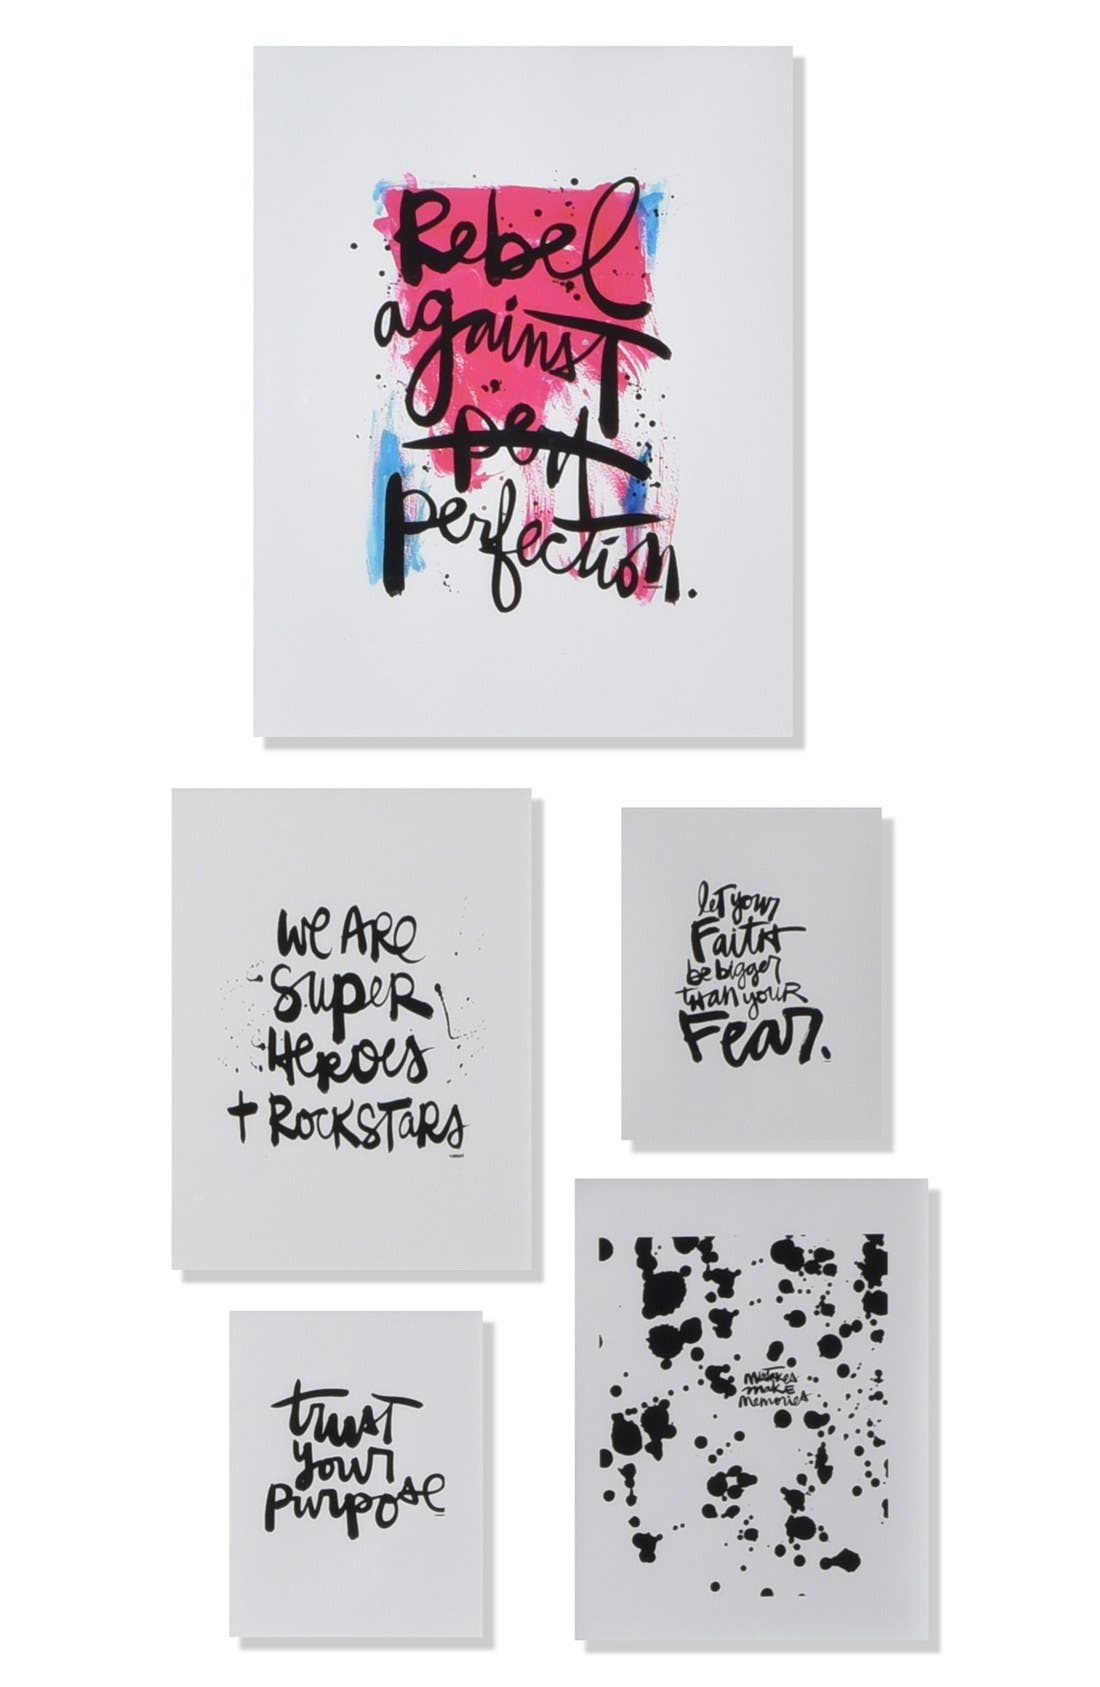 DENY DESIGNS 'Rebel Against Perfection' Wall Art Gallery